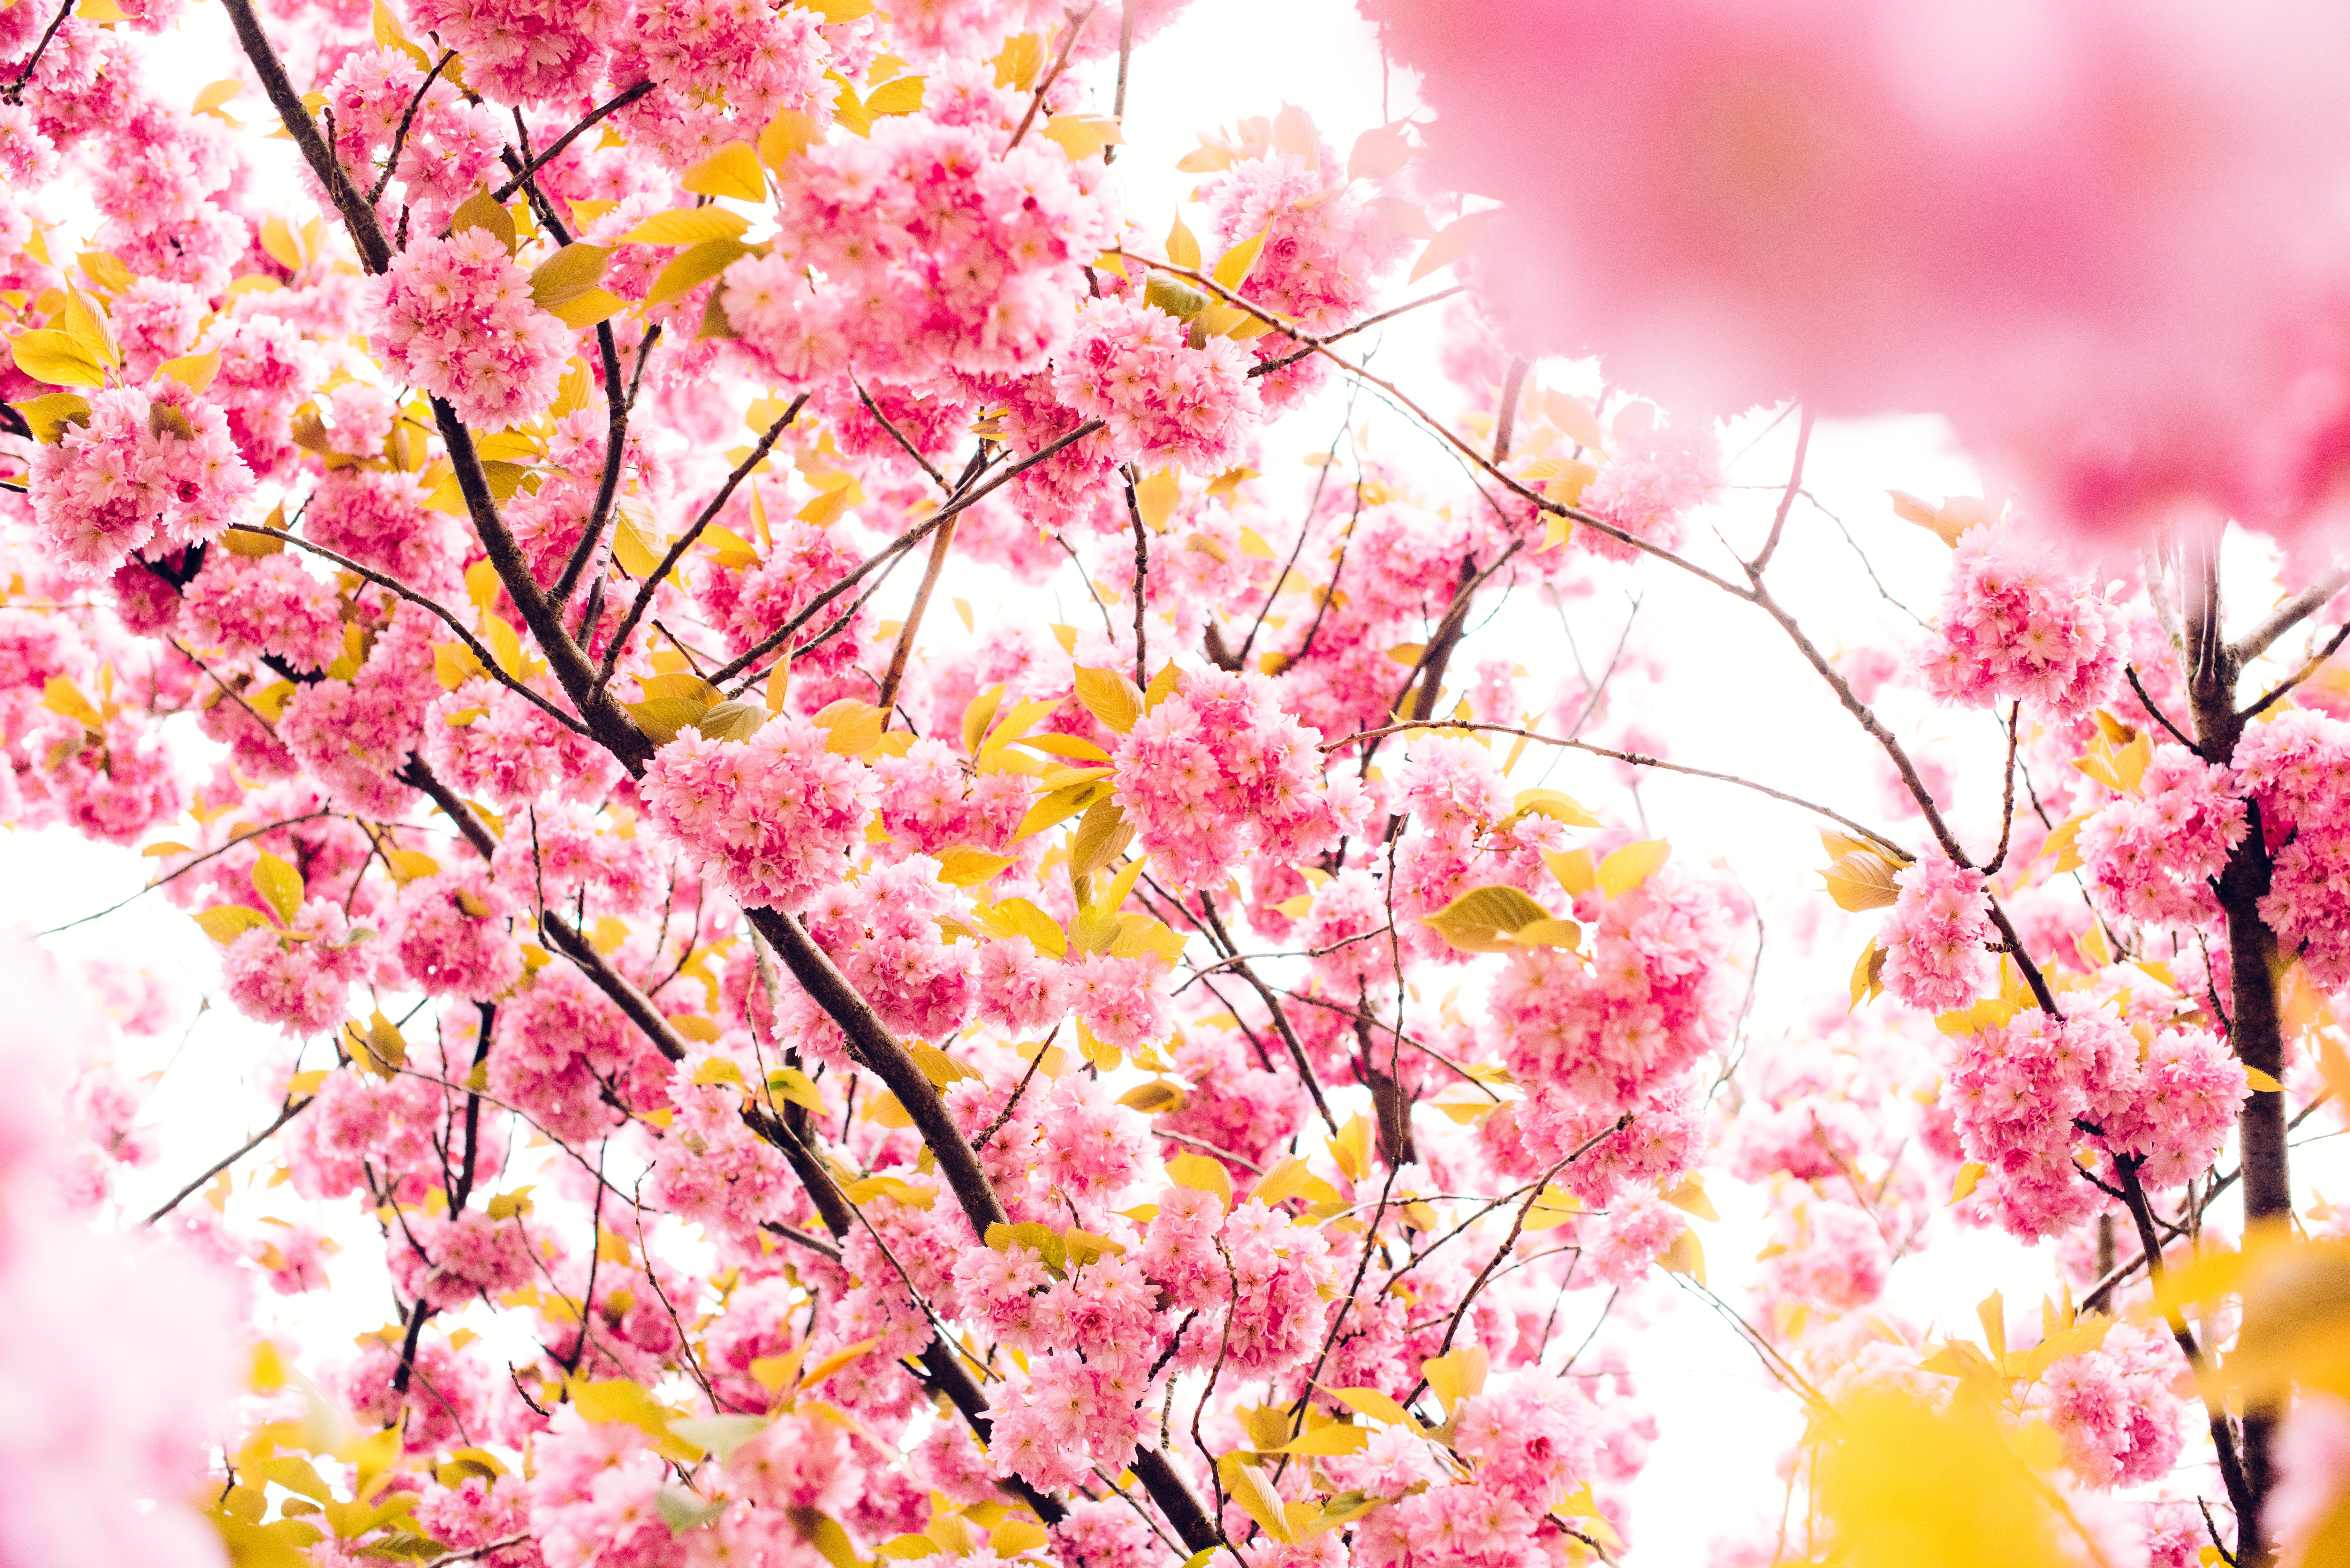 Close up nature shot of tree branch with beautiful pink blossom in Spring